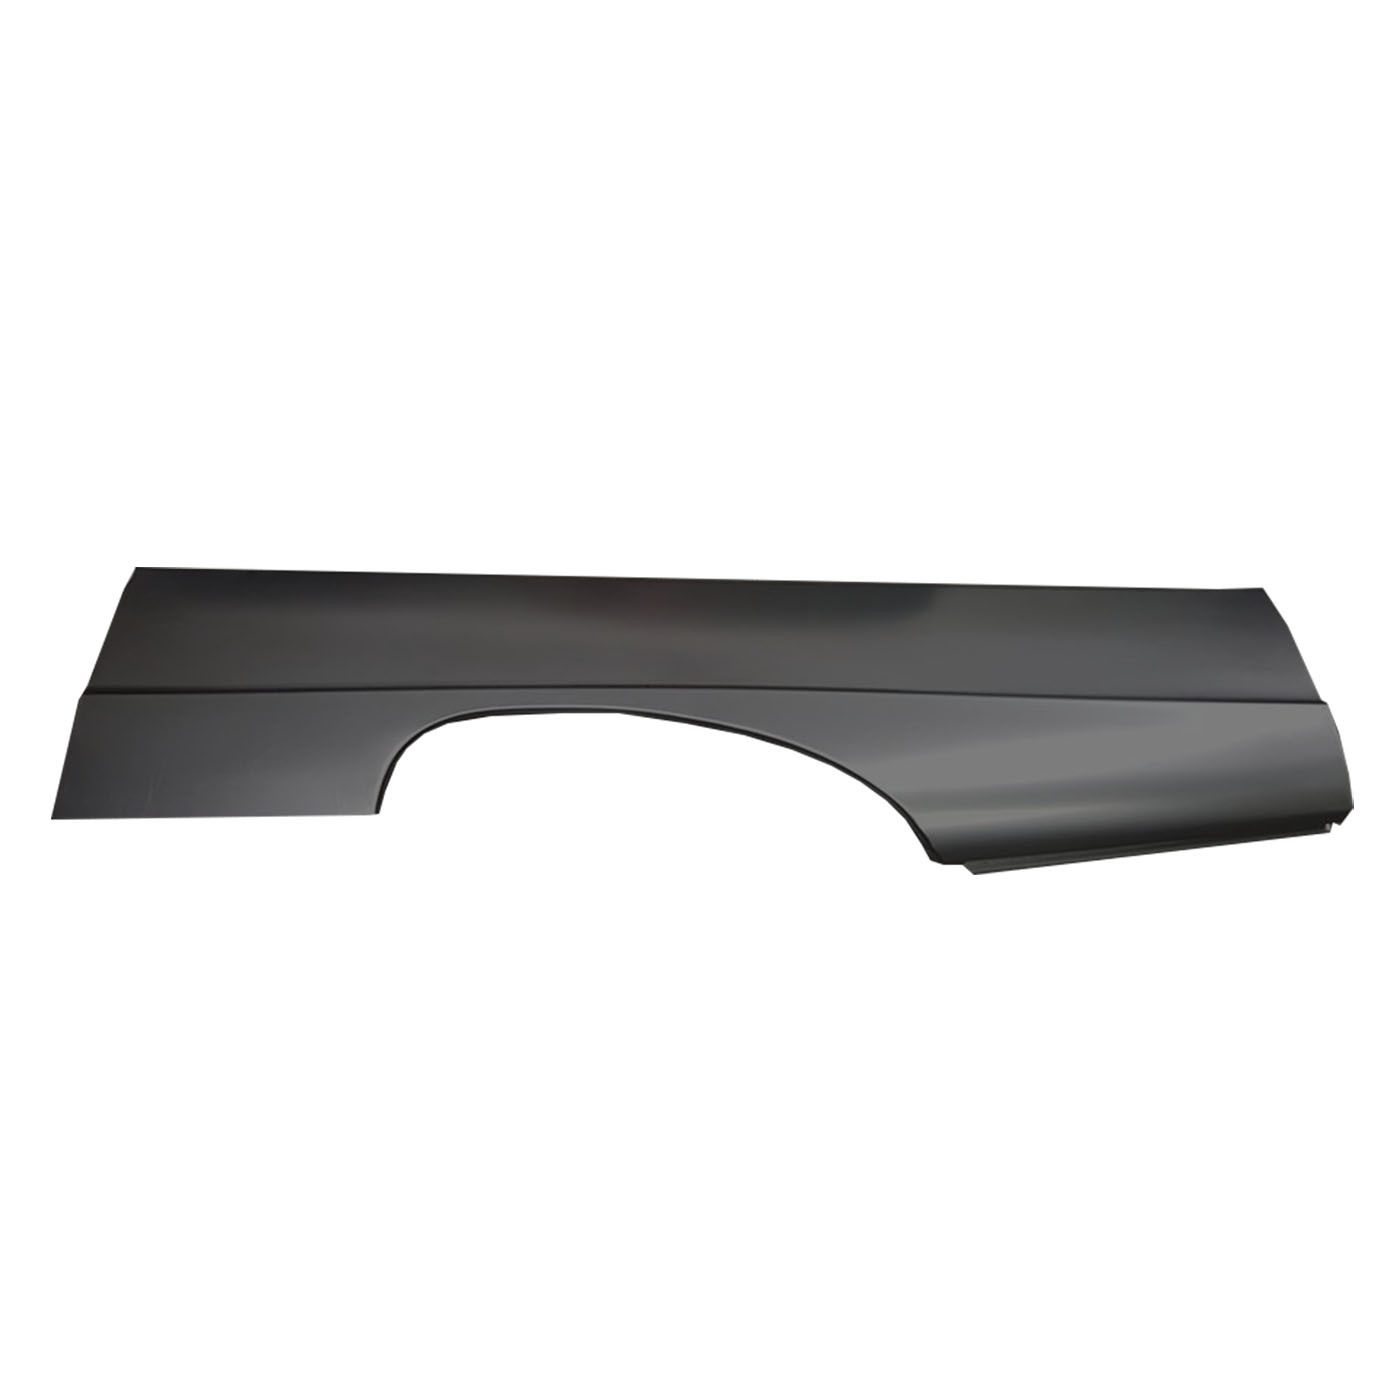 RIGHT FULL REAR QUARTER RUST PANEL FOR FORD XK XL XM XP COUPE